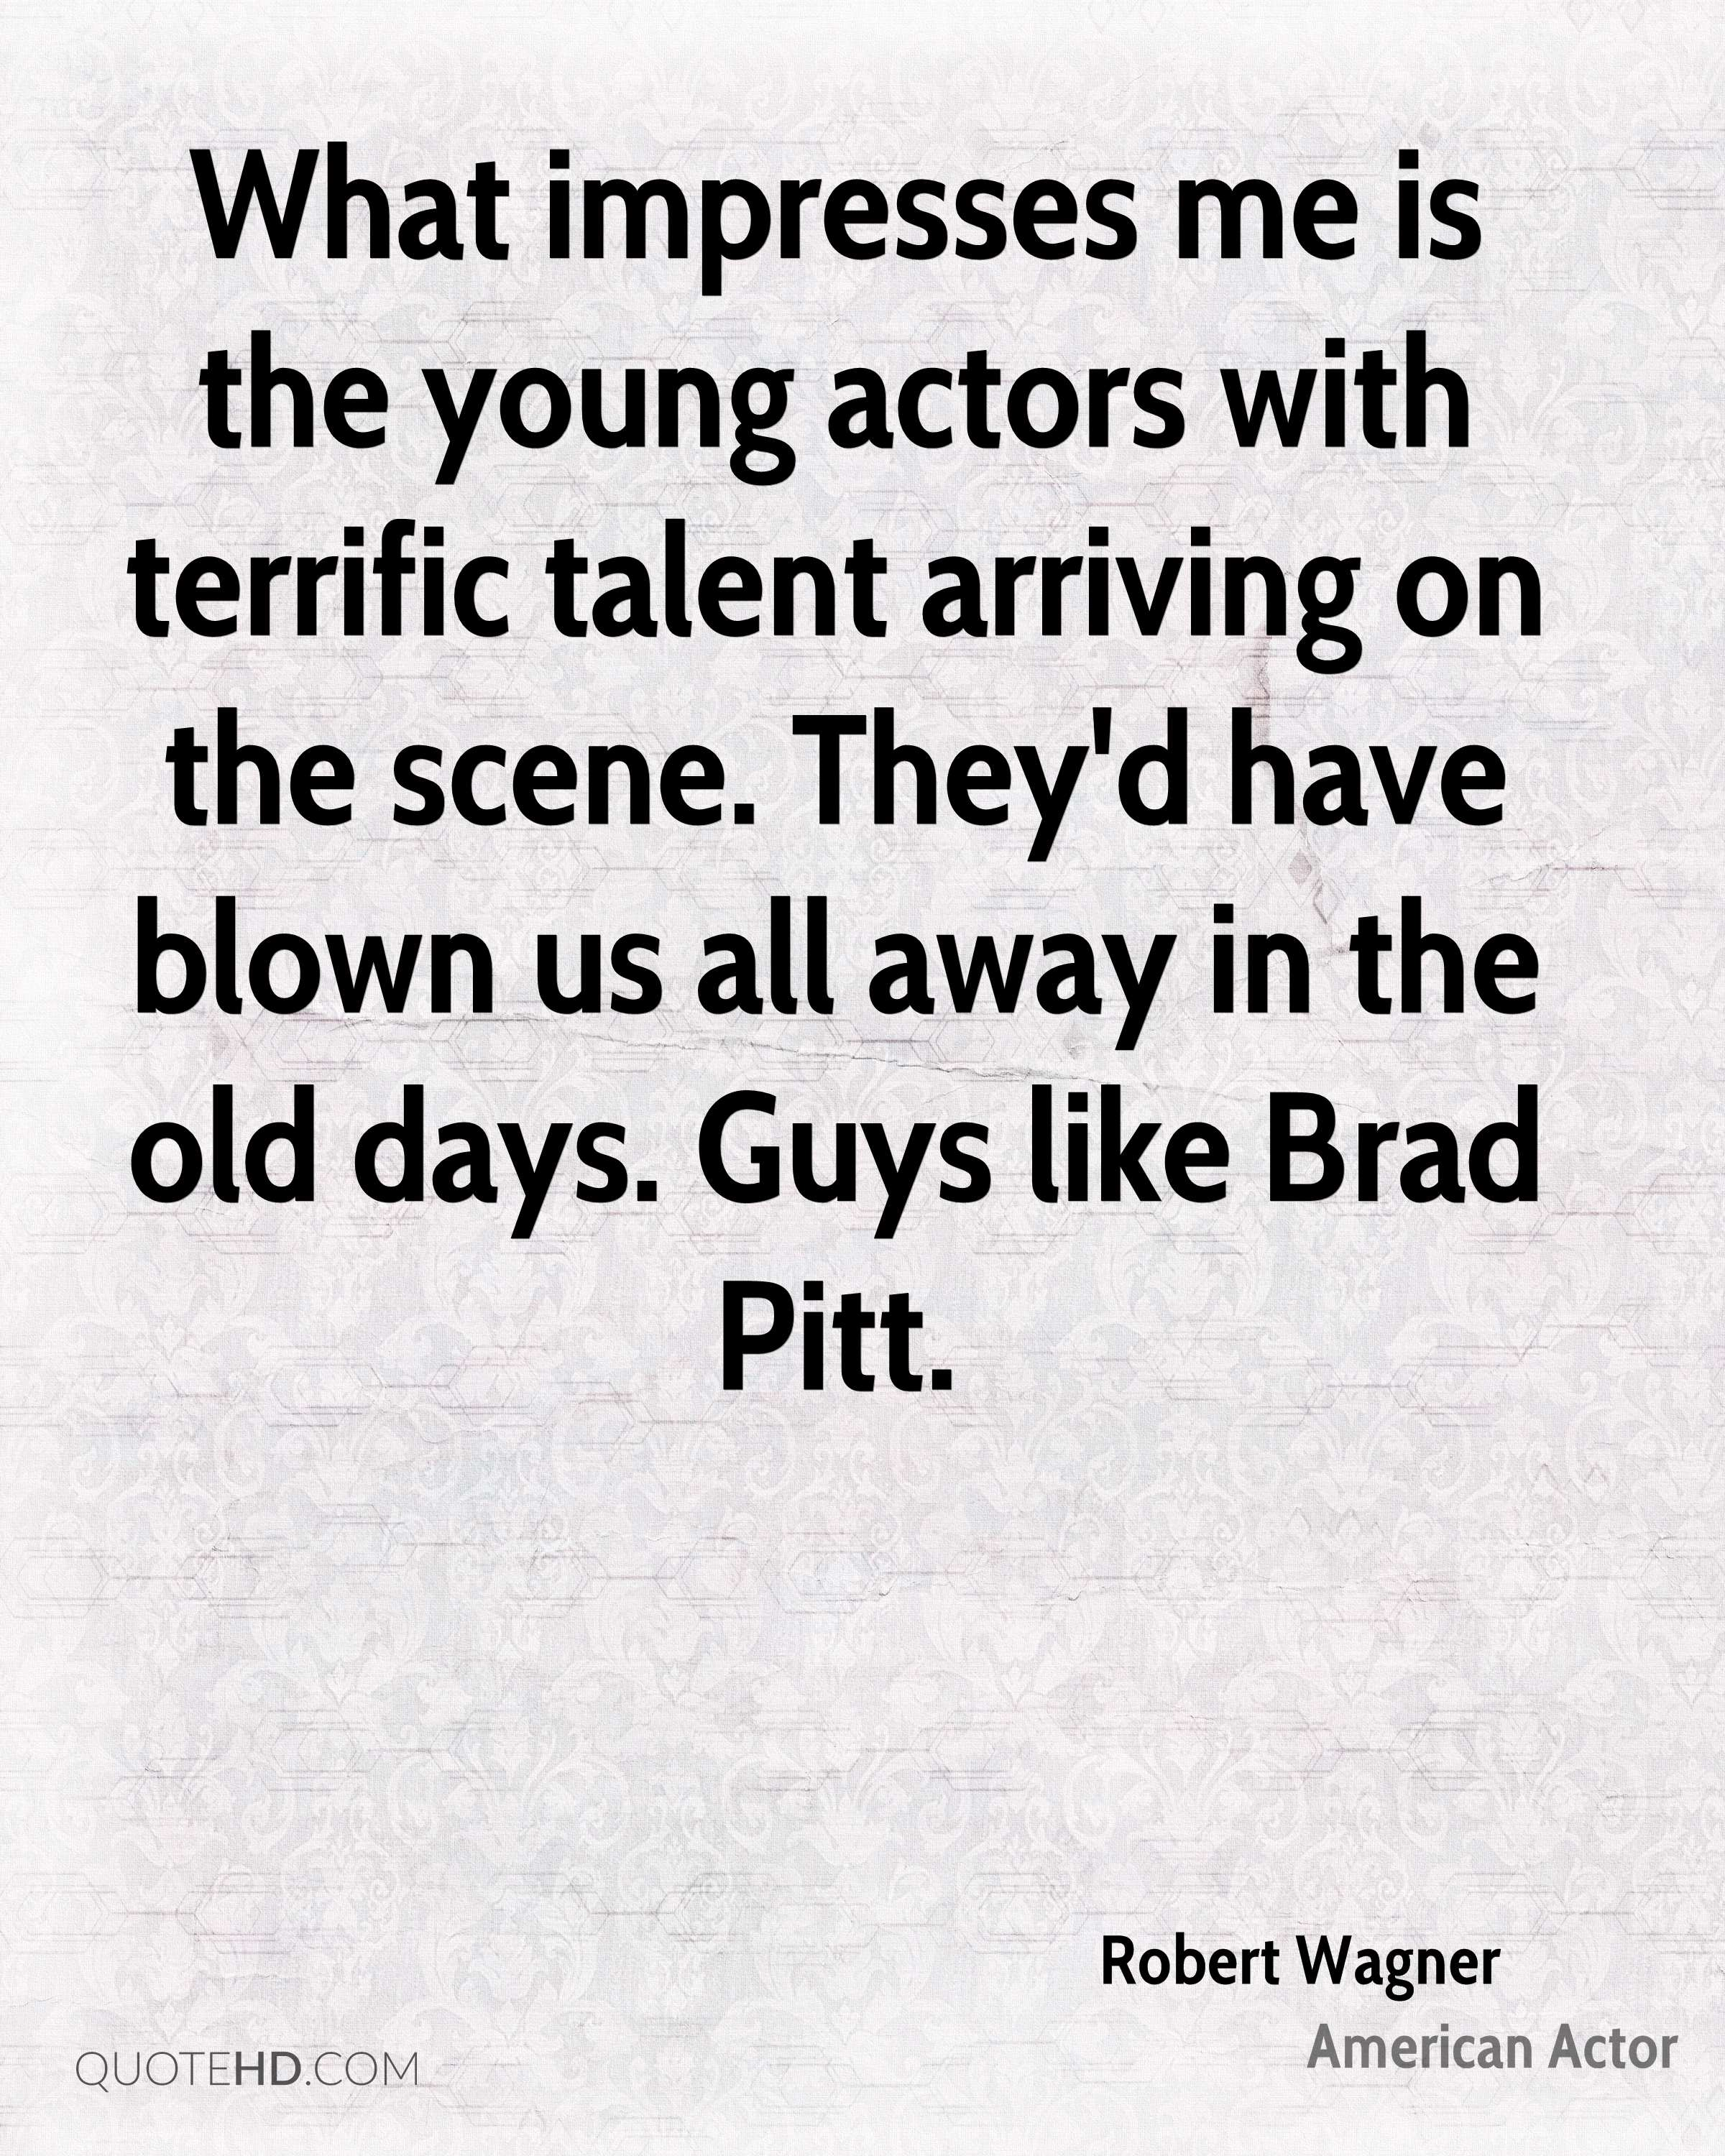 What impresses me is the young actors with terrific talent arriving on the scene. They'd have blown us all away in the old days. Guys like Brad Pitt.